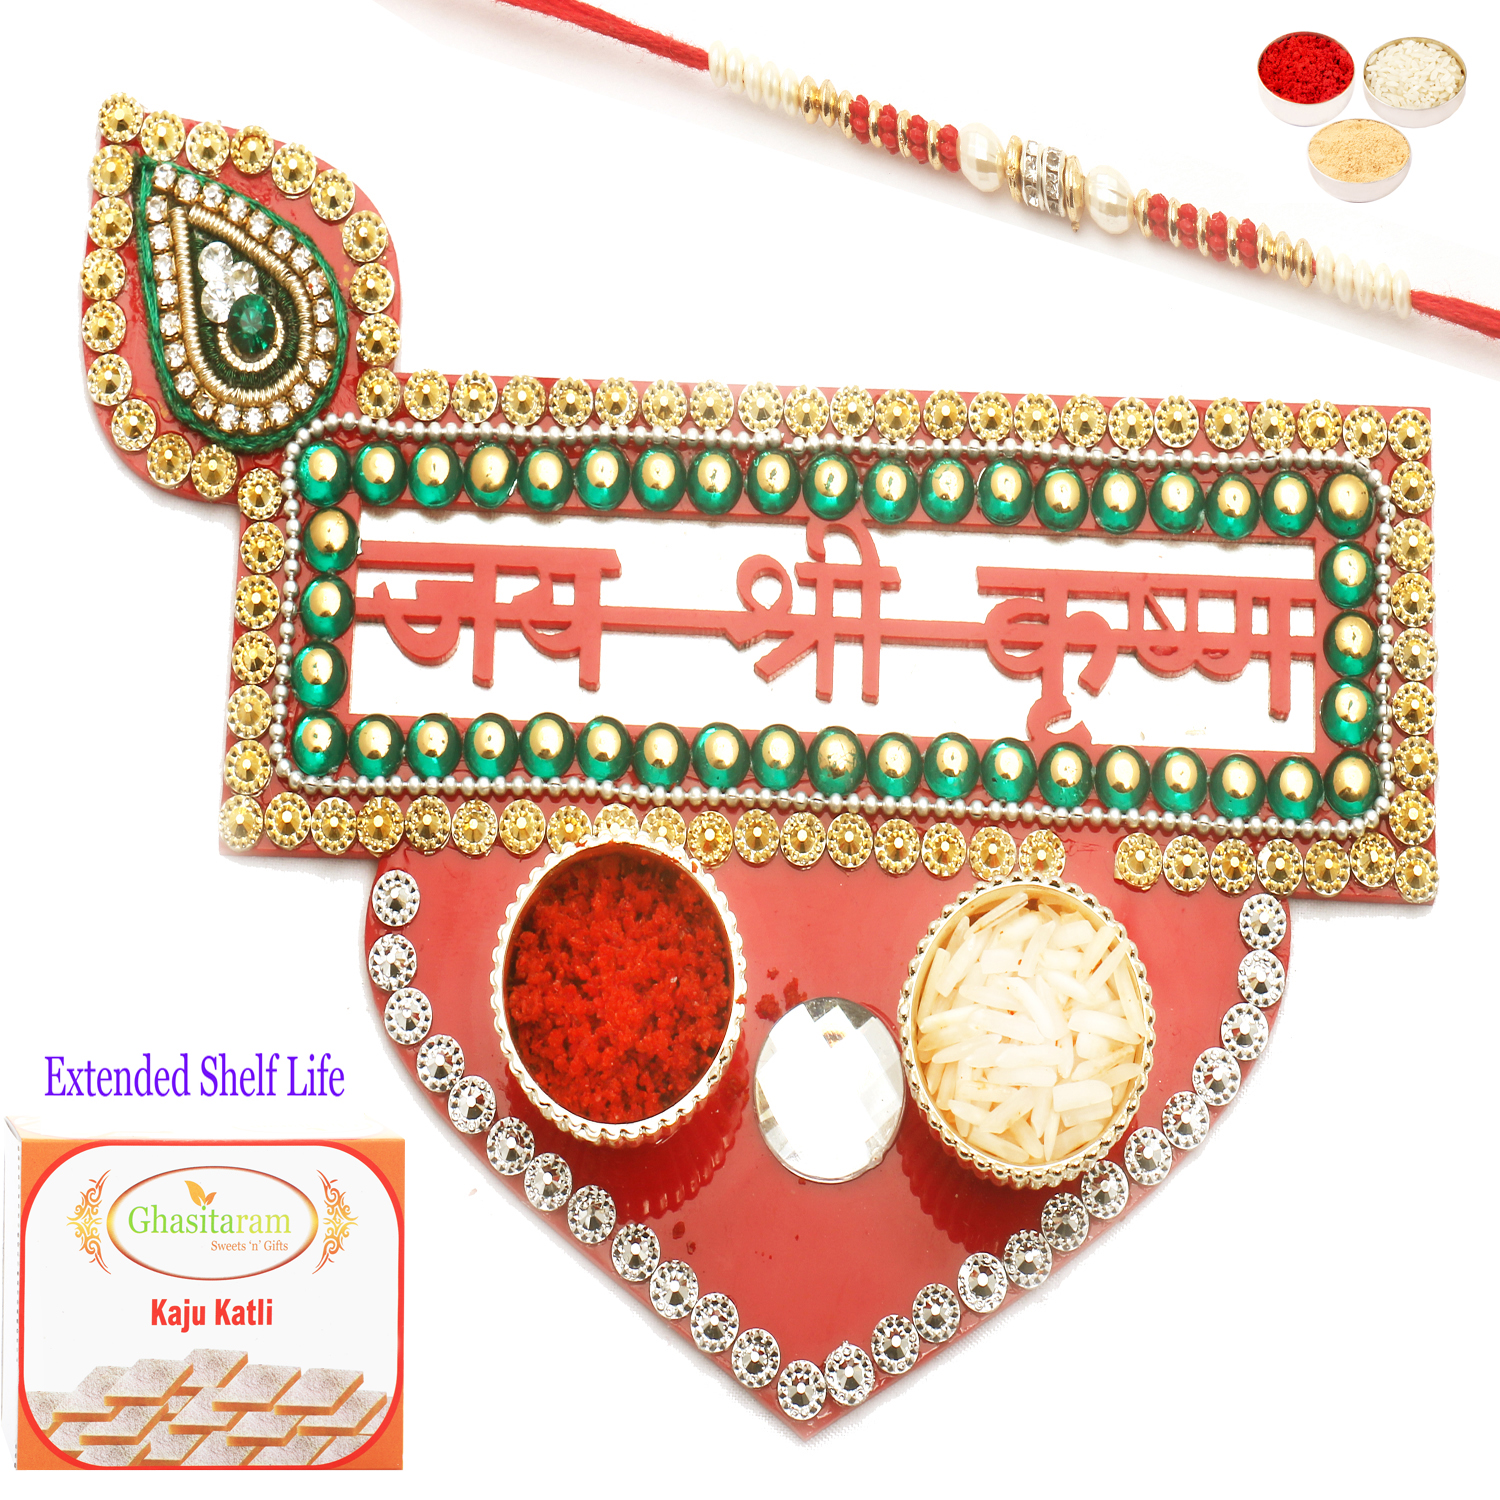 Jai Shree Krishna Pooja Thali with Red Pearl Rakhi n 200Gm Kaju Katli